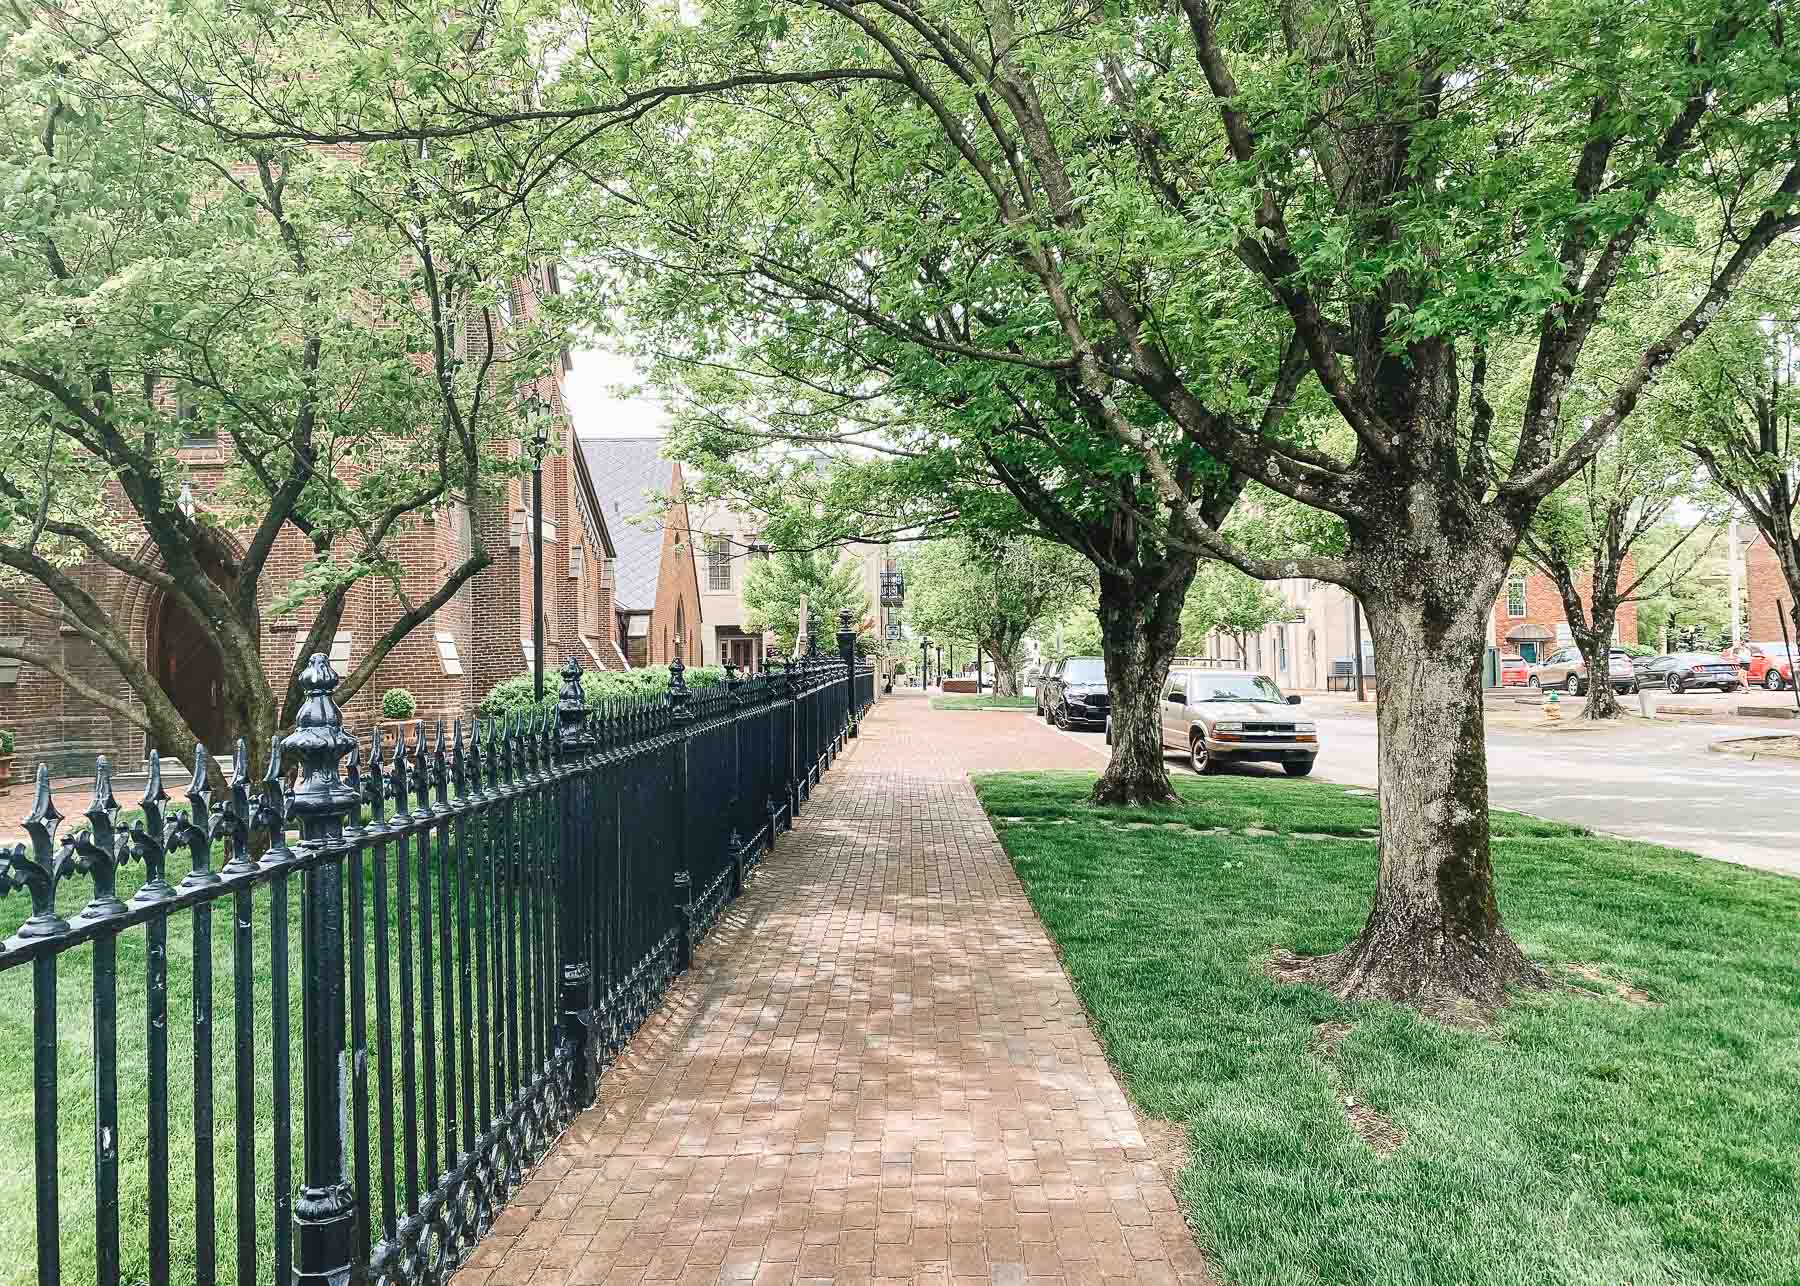 sidewalk in downtown Huntsville Alabama with a fence and brick buildings on the left and leaf-filled trees on the right